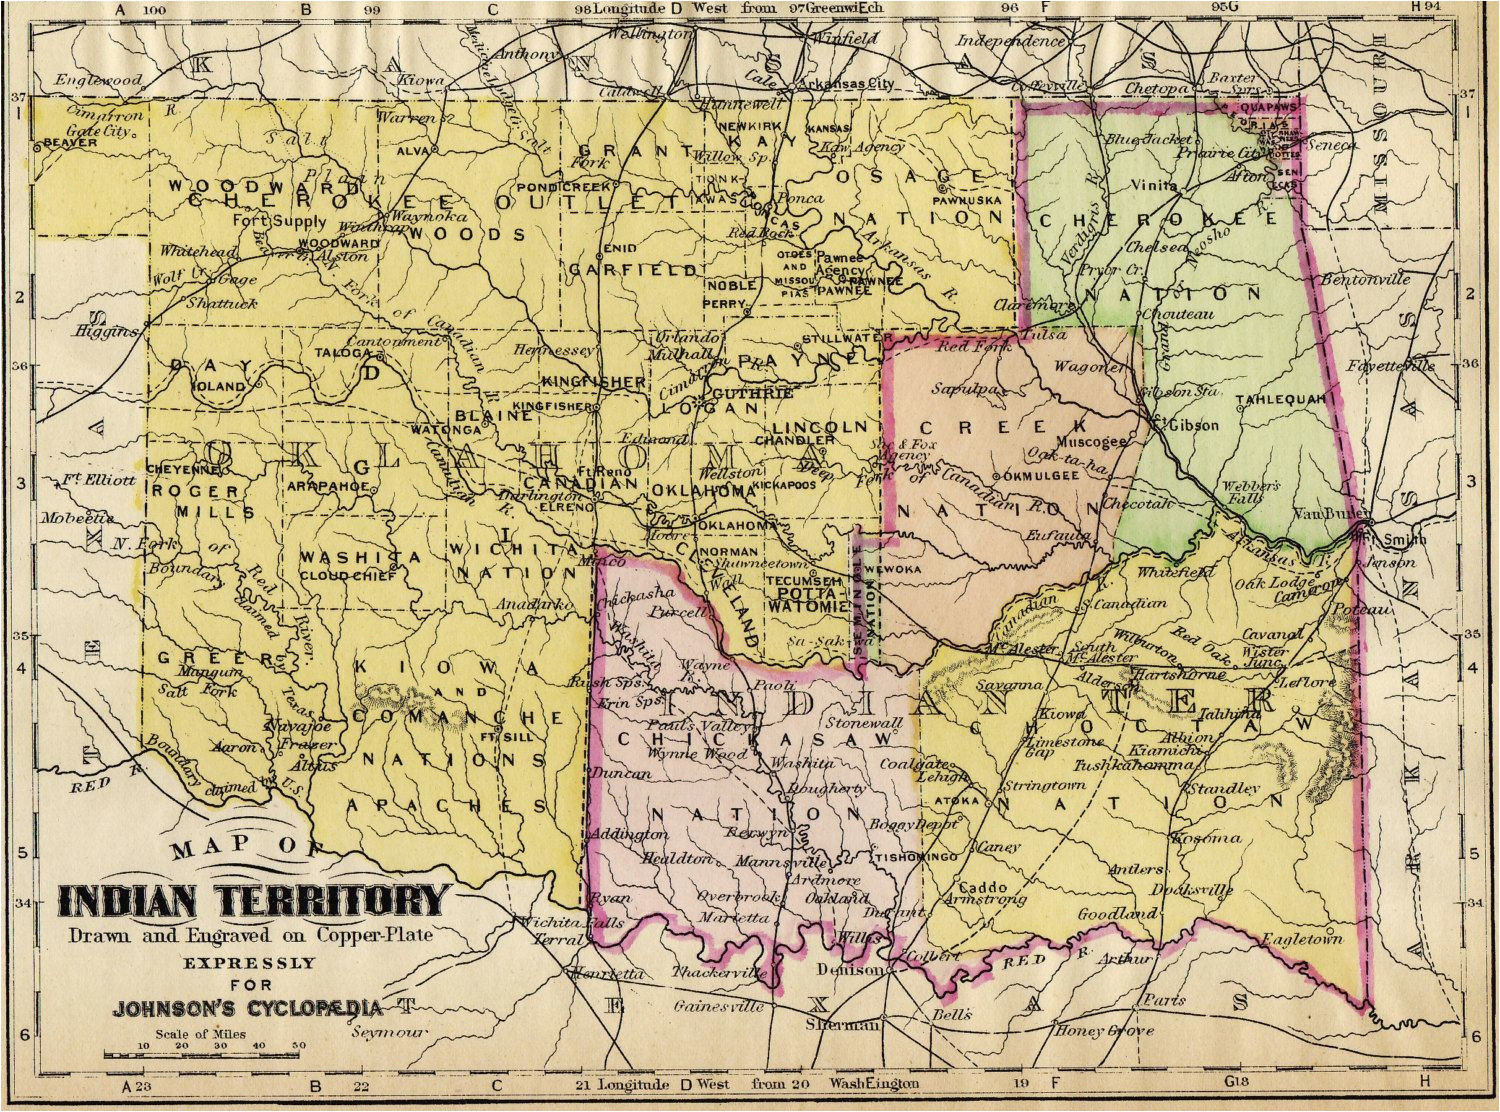 map of indian territory original colored antique map engraving